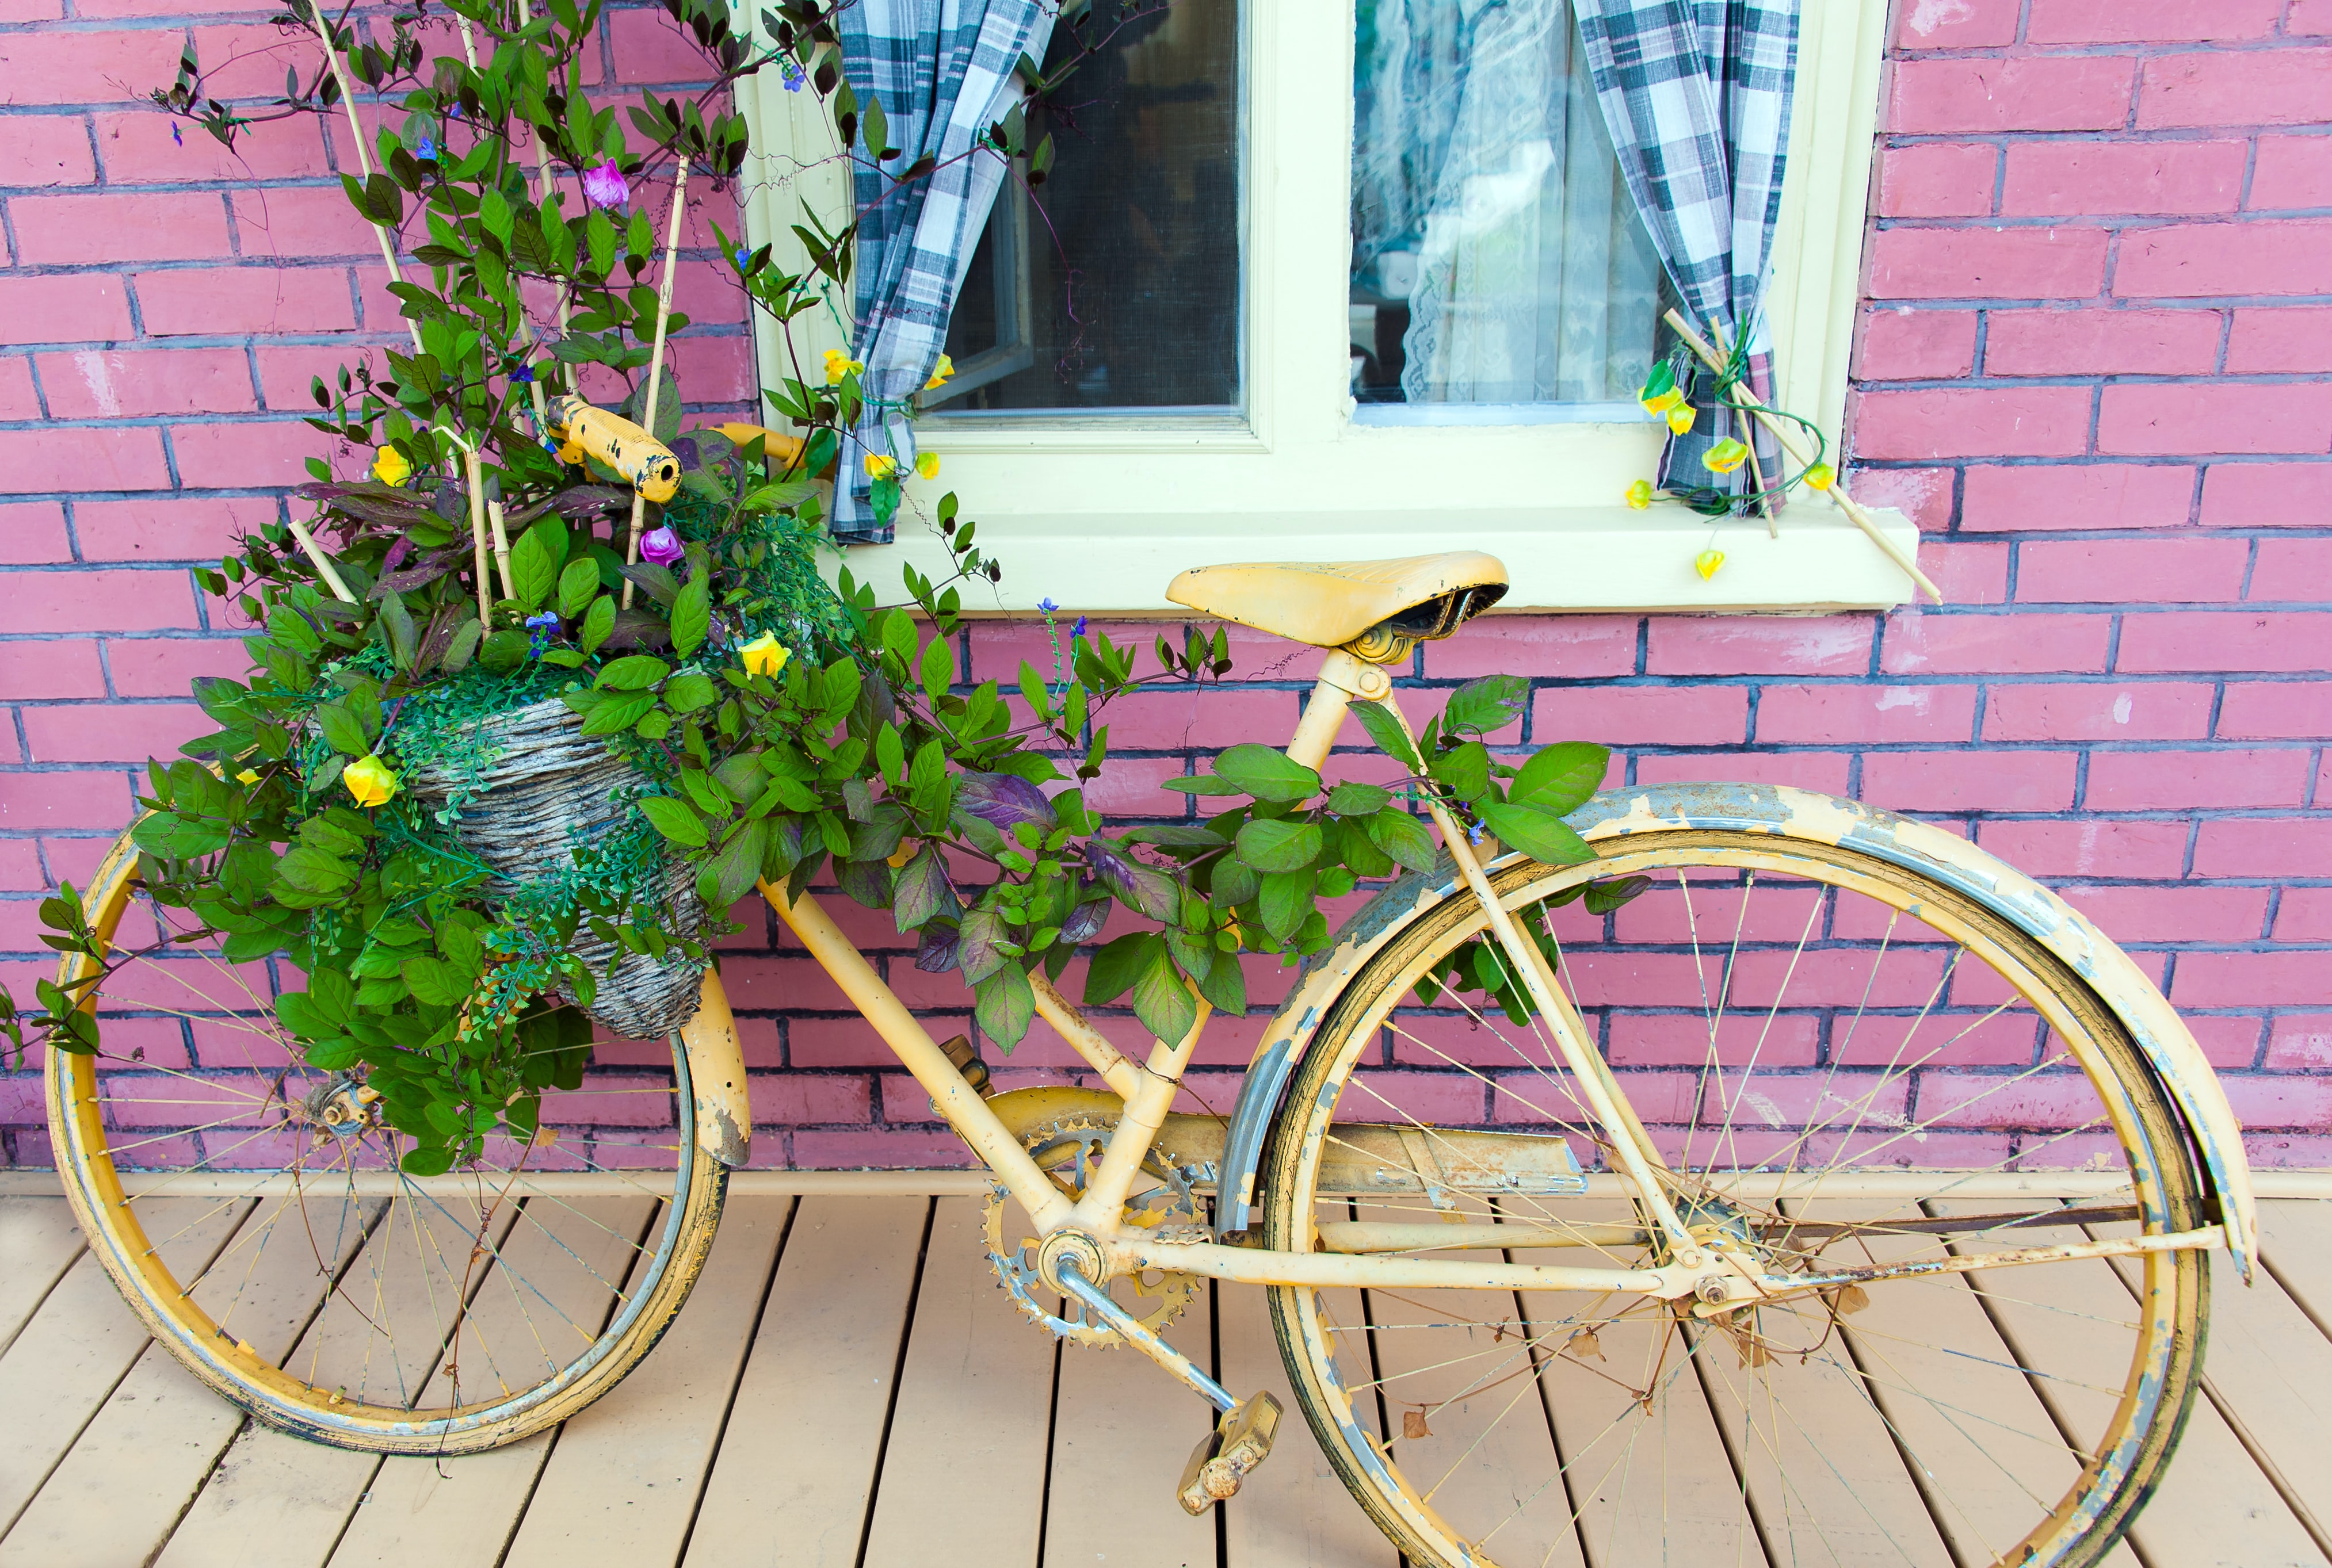 brown city bike with flowers near red brick building during daytime